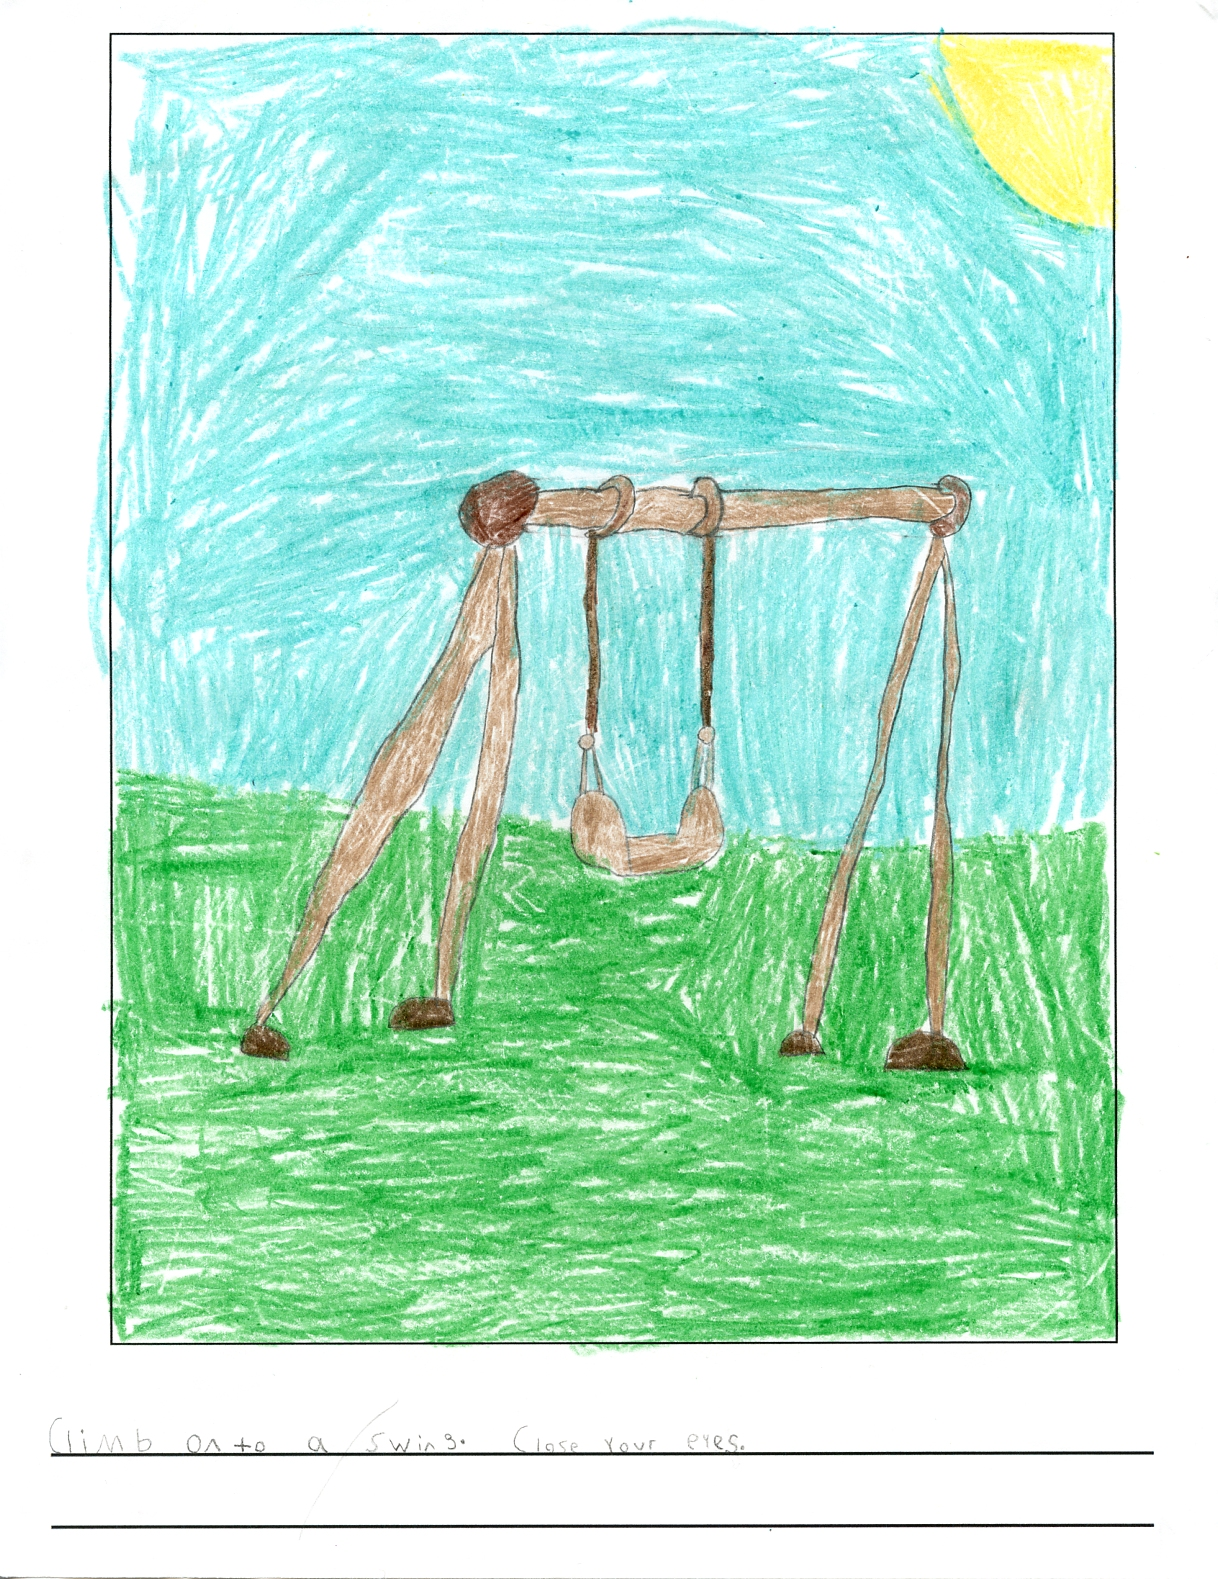 picture of a swing in green grass beneath a bright clear sky and sun